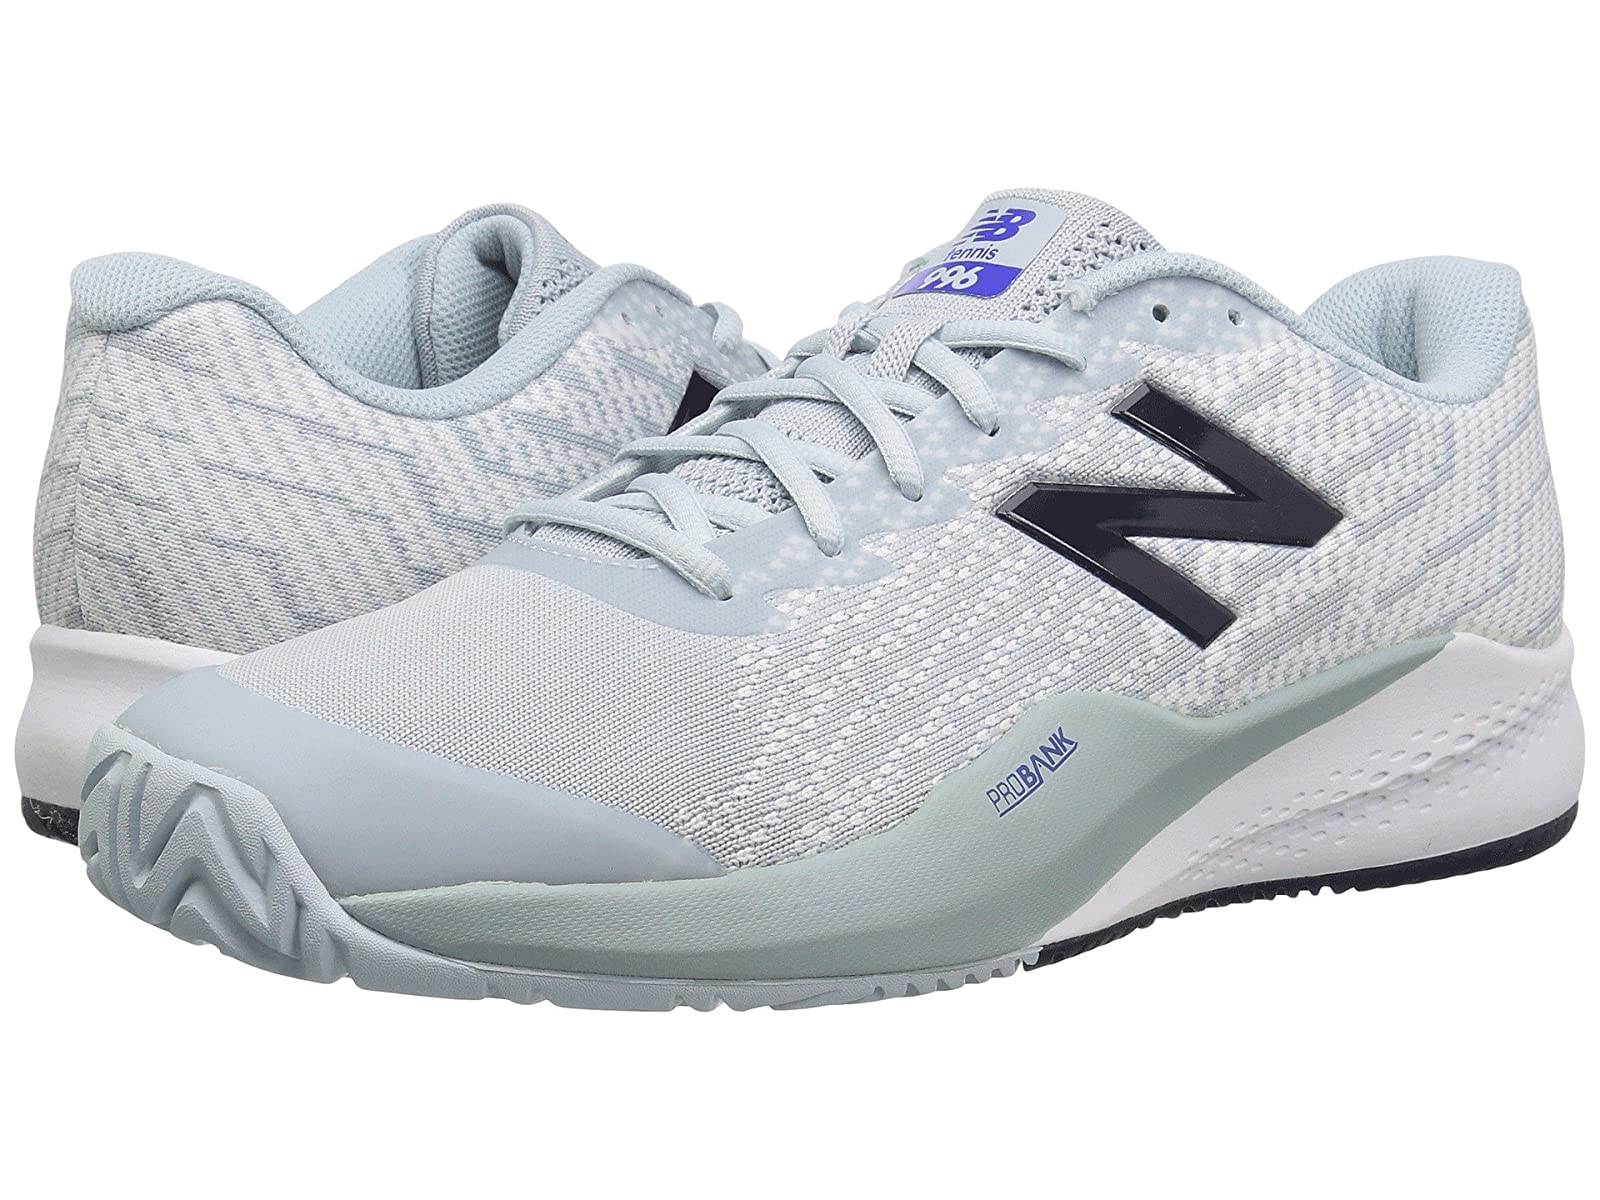 New Balance MCH996v3Cheap and distinctive eye-catching shoes